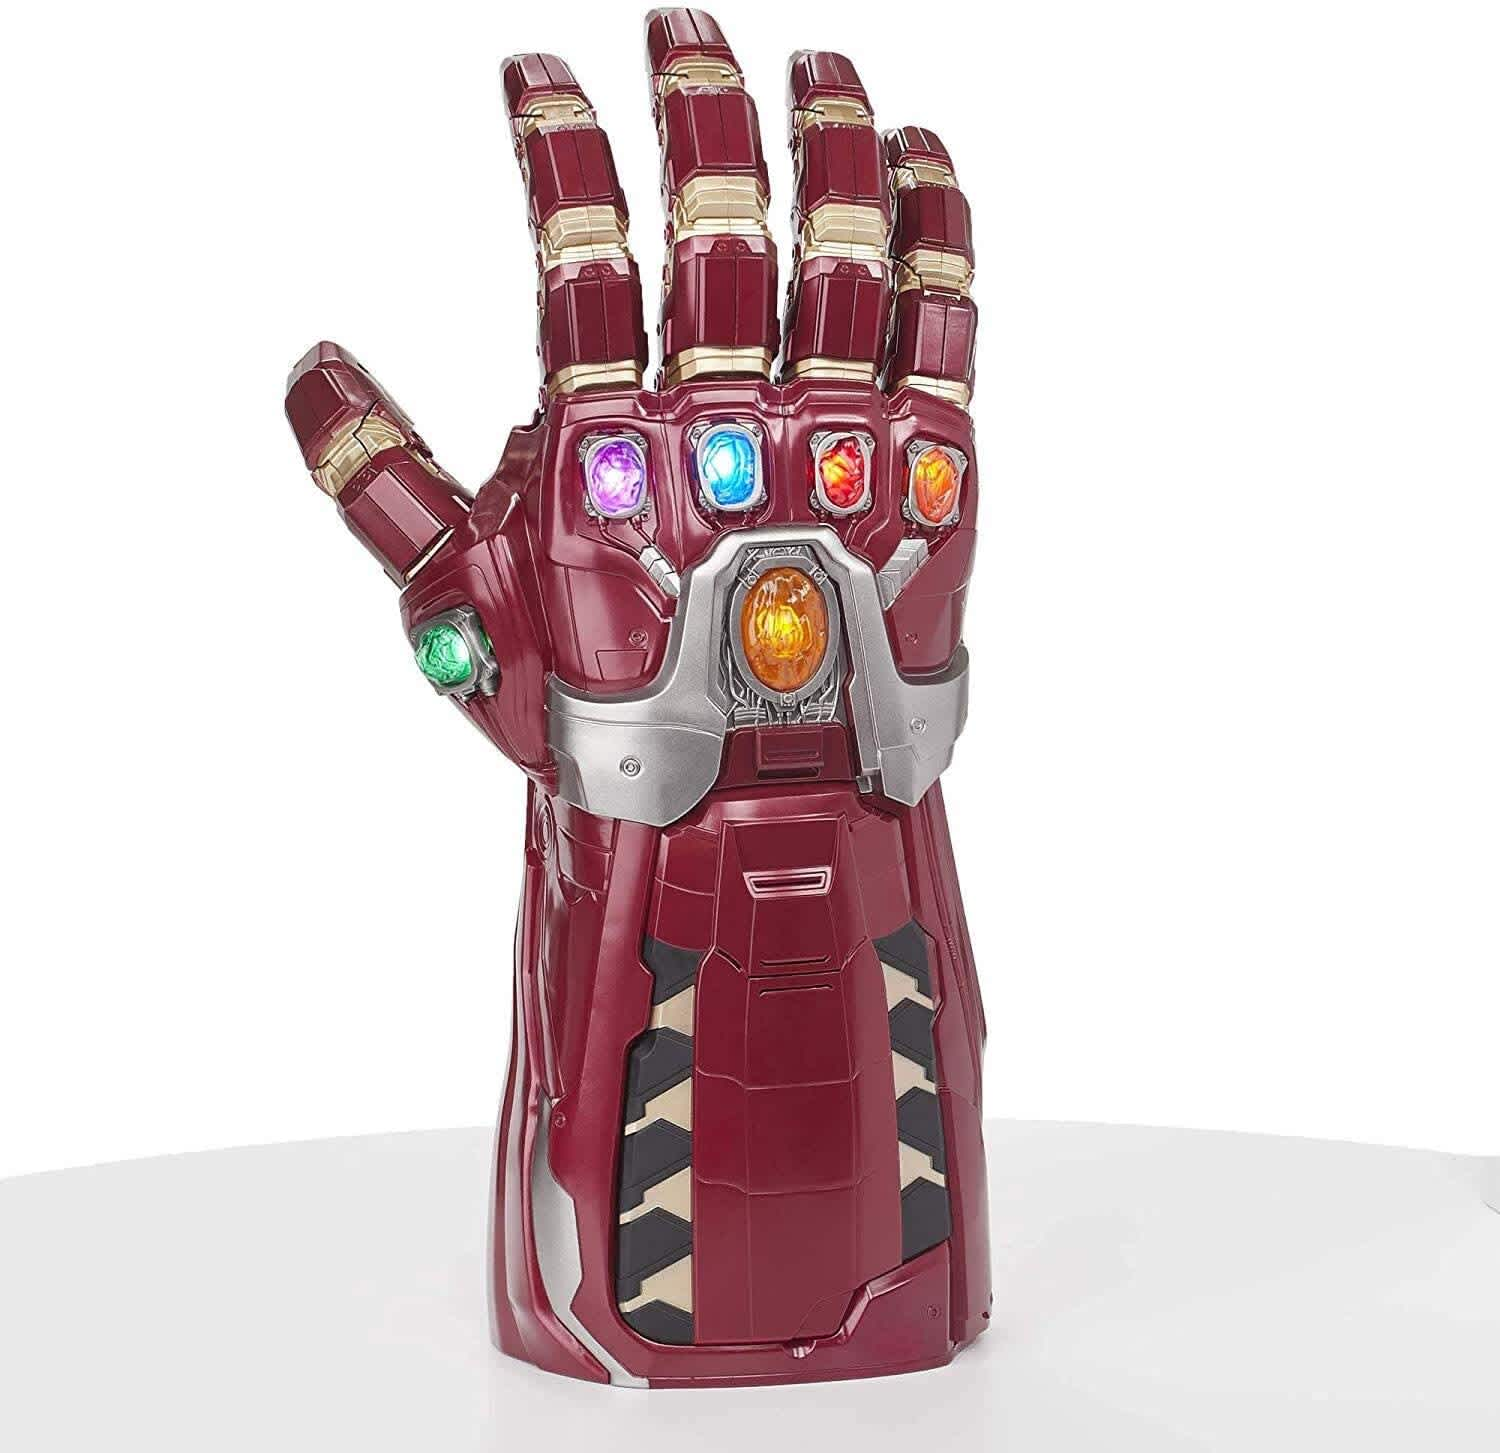 Marvel Legends Series Avengers Endgame Power Gauntlet